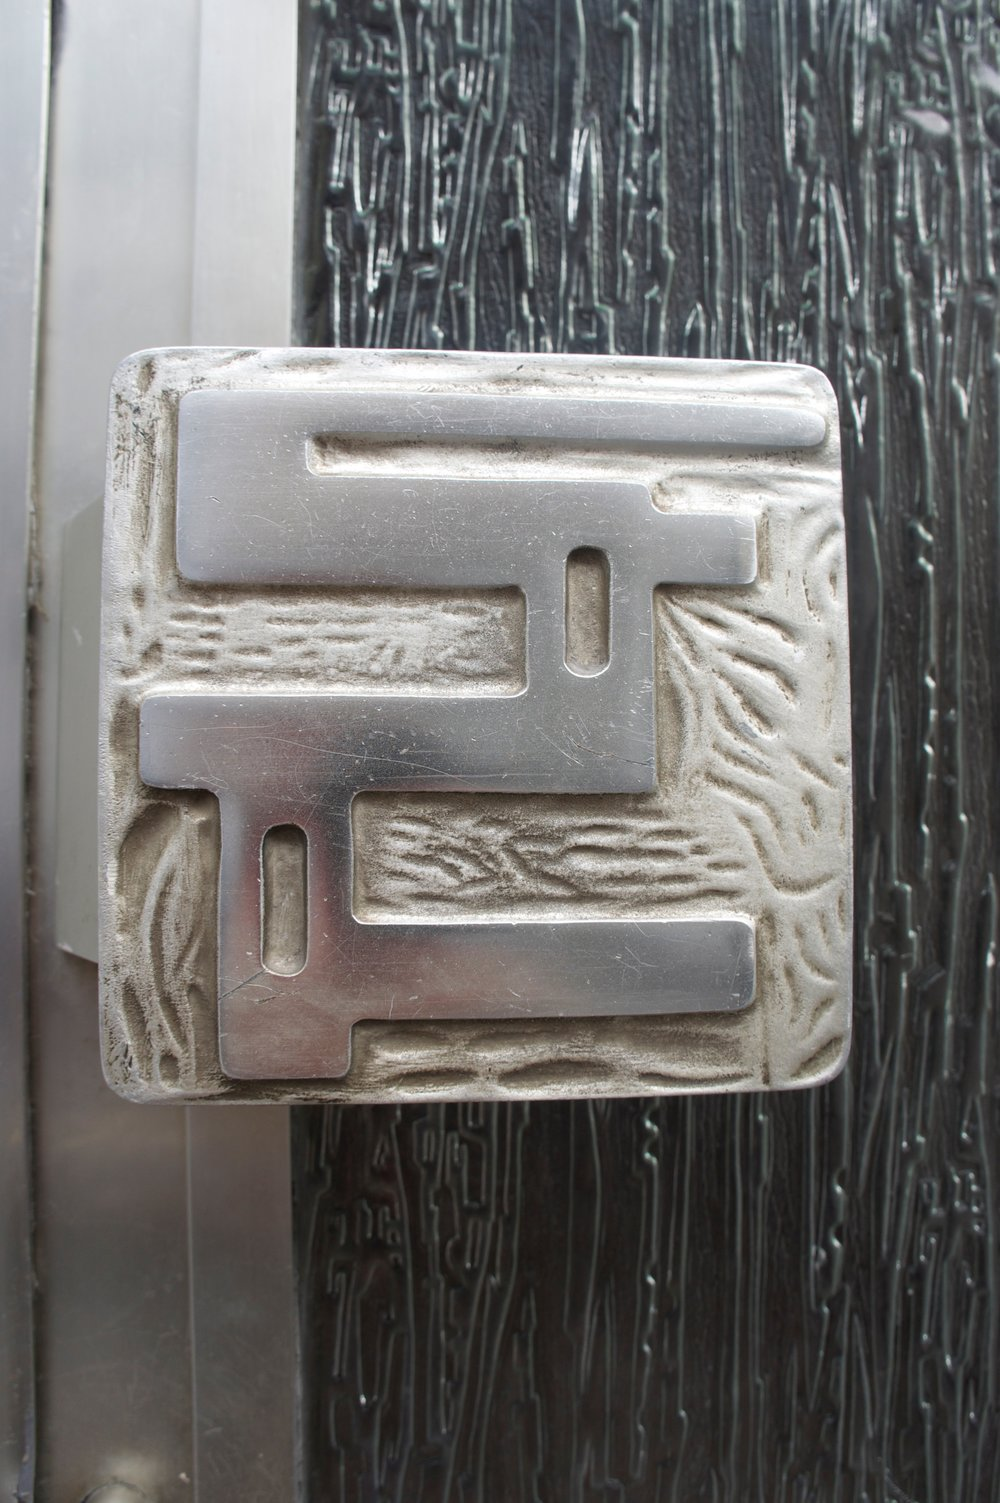 This fucking ace door handle was in Bruxelle/Brussels as well , looks to be cast aluminium , great glass door as well 40-50's era? They just don't put any effort into door handles anymore,  i think the entrance to your home should send a message of reverence and pride of place.